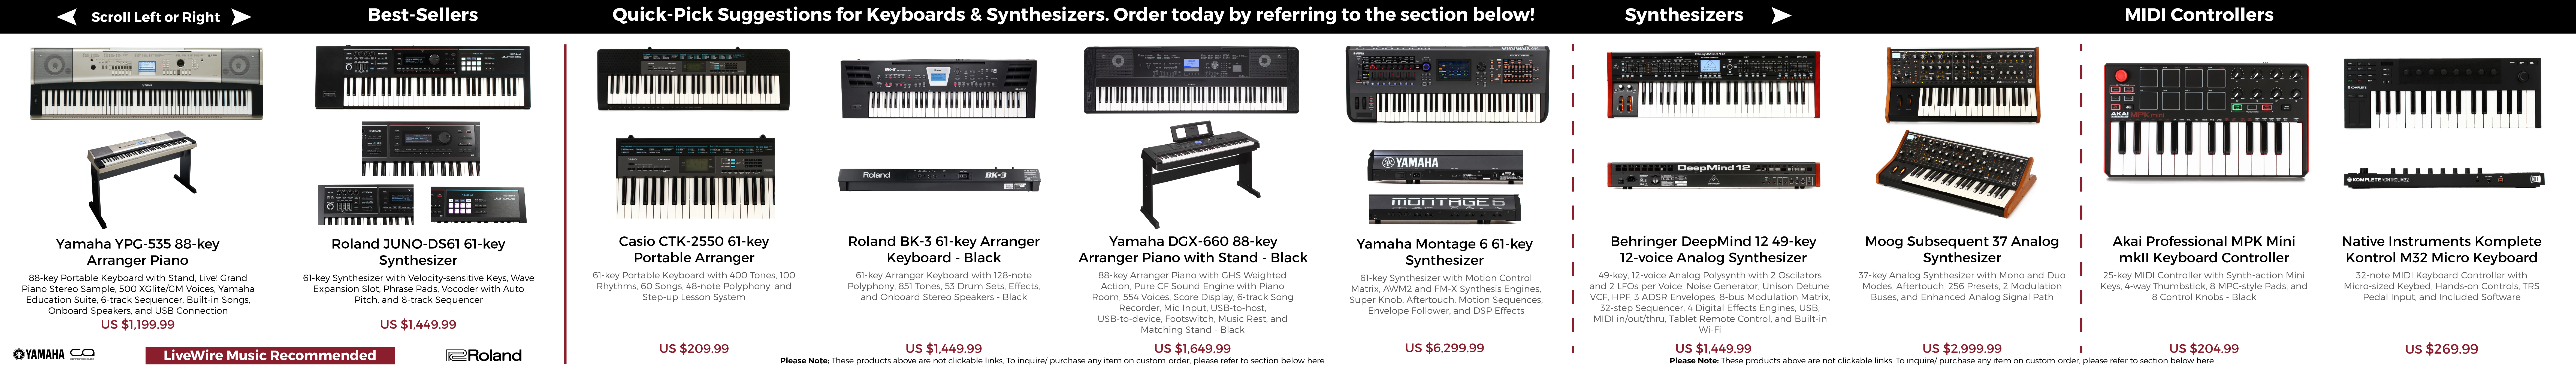 LW-Keyboards-amp-Synthesizers-Options.png